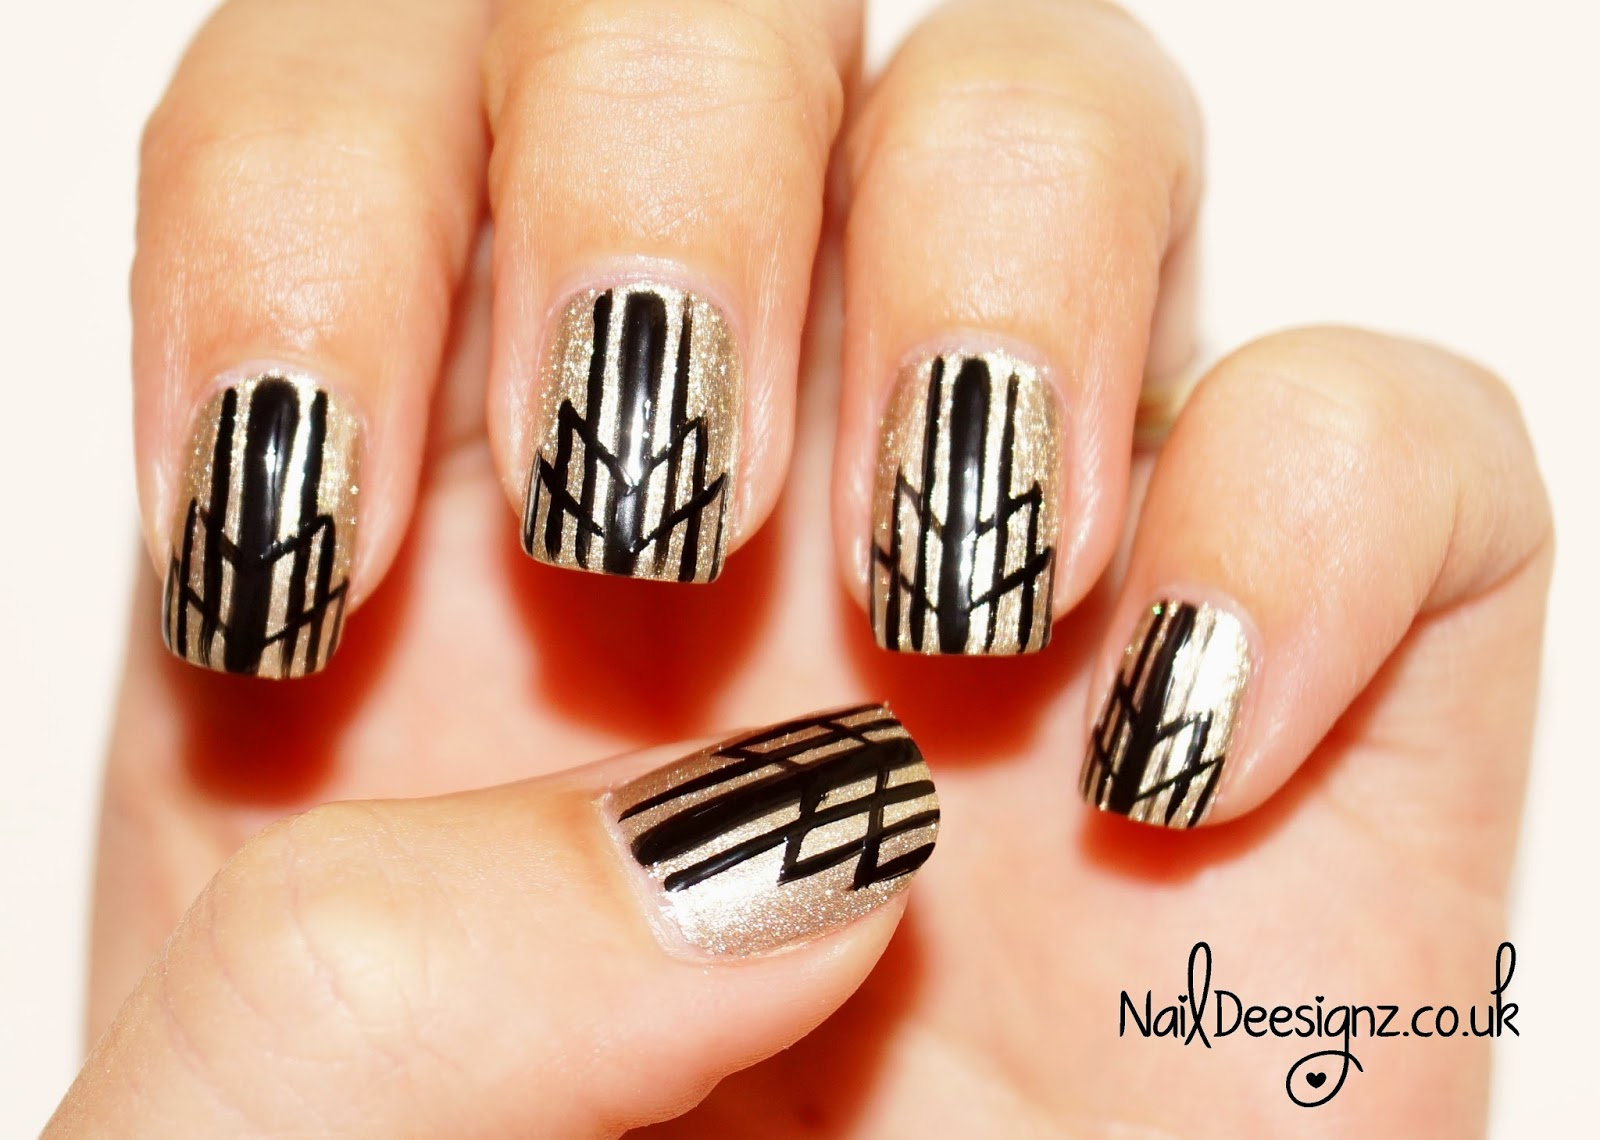 naildeesignz art deco nail art. Black Bedroom Furniture Sets. Home Design Ideas